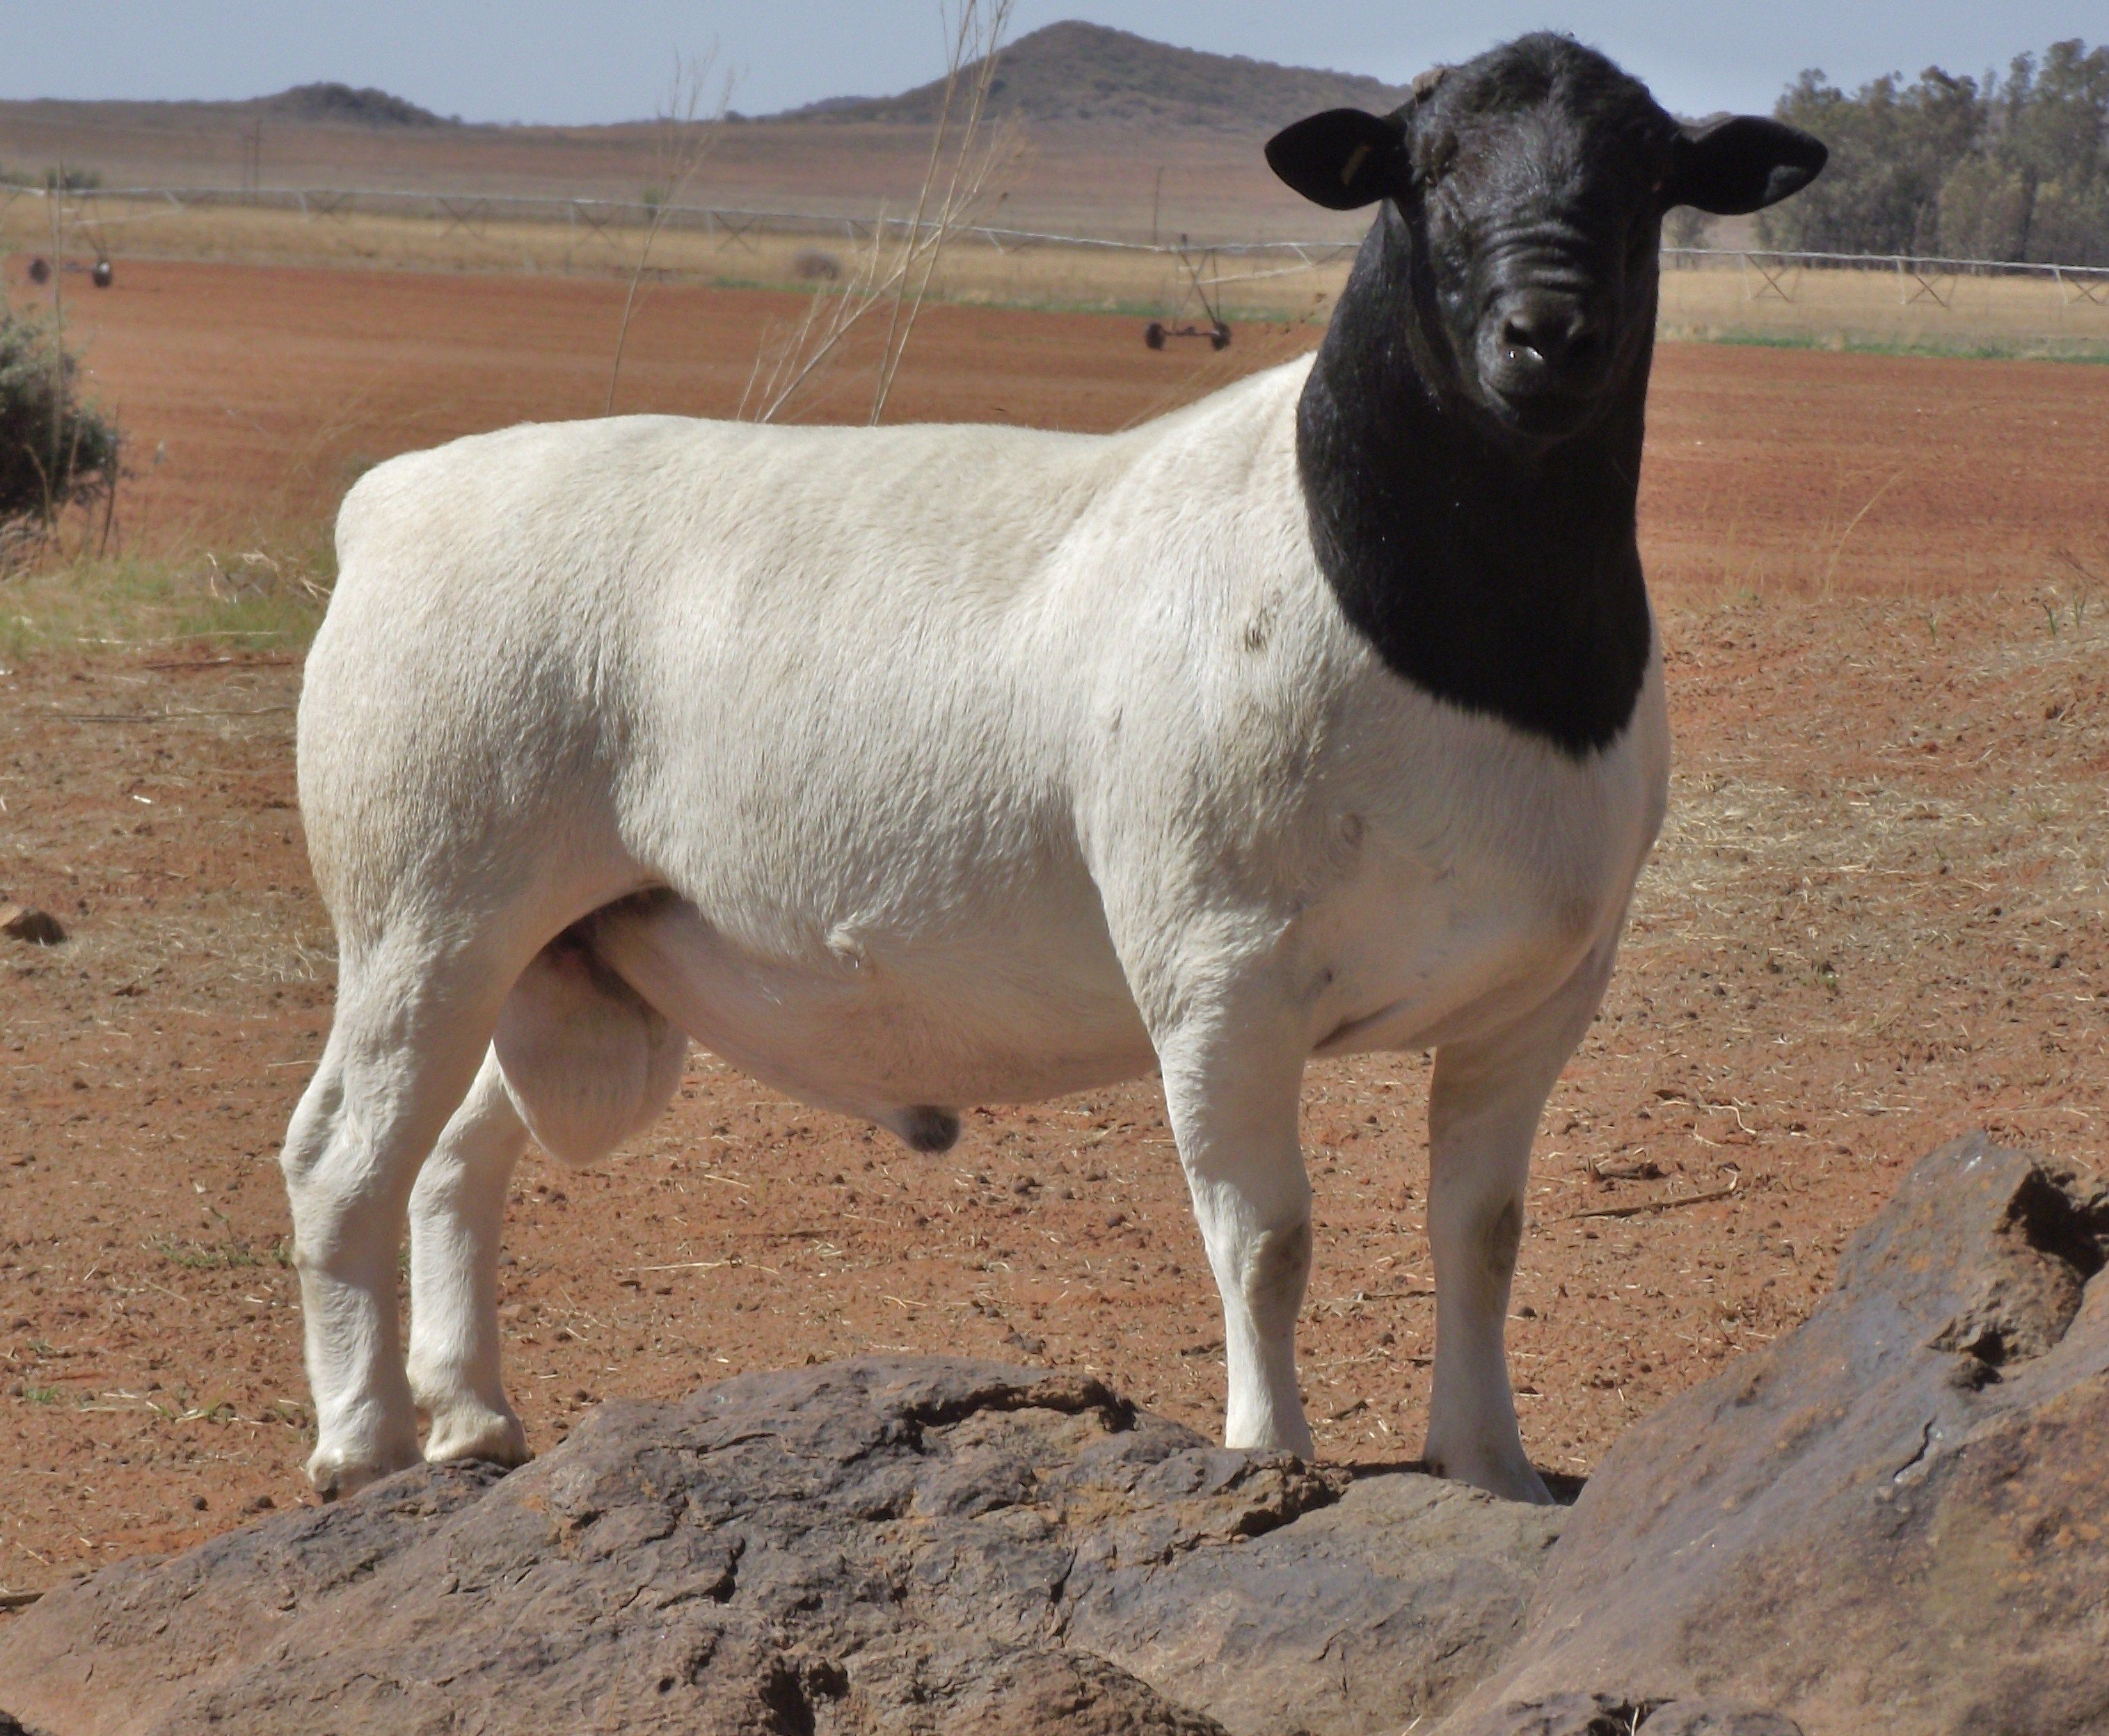 black singles in sheep ranch Sheep farmers will love these sheep ranch personal checks exclusively from bank checks now have you ever been to a sheep ranch.